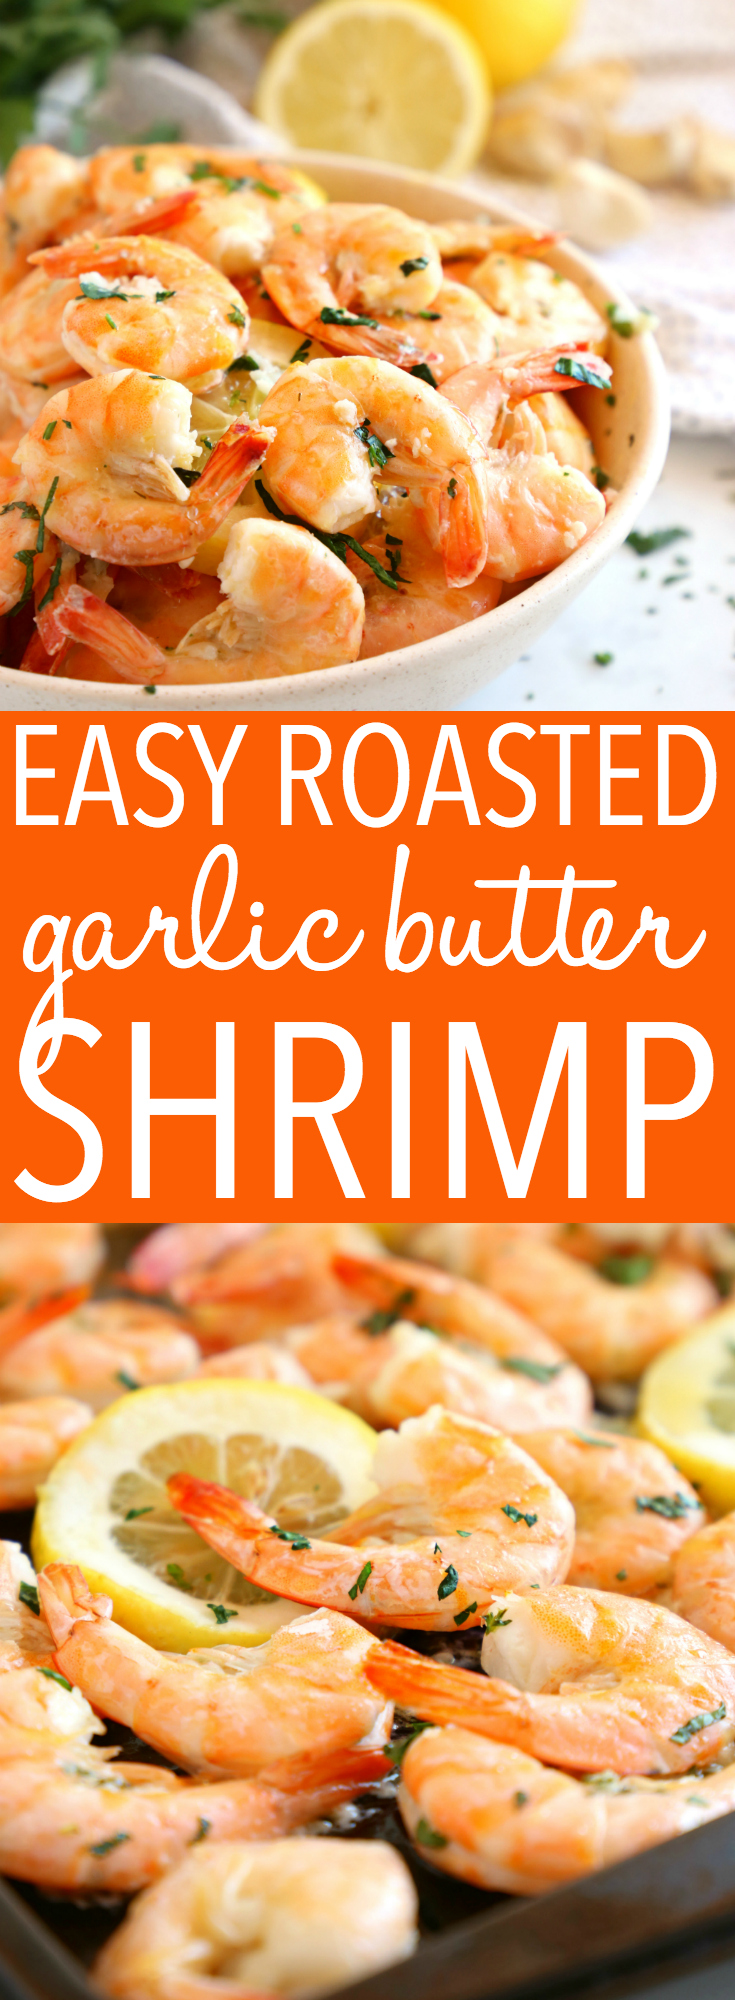 These Easy Roasted Garlic Butter Shrimp make a great main dish for seafood lovers! They're easy to make and bursting with delicious garlic flavour! Recipe from thebusybaker.ca! #shrimp #roasted #ovenroasted #garlic #garlicshrimp #seafoodrecipe #easyshrimp #easymealidea #familymeal #30minutemeal #onepot #onepan via @busybakerblog